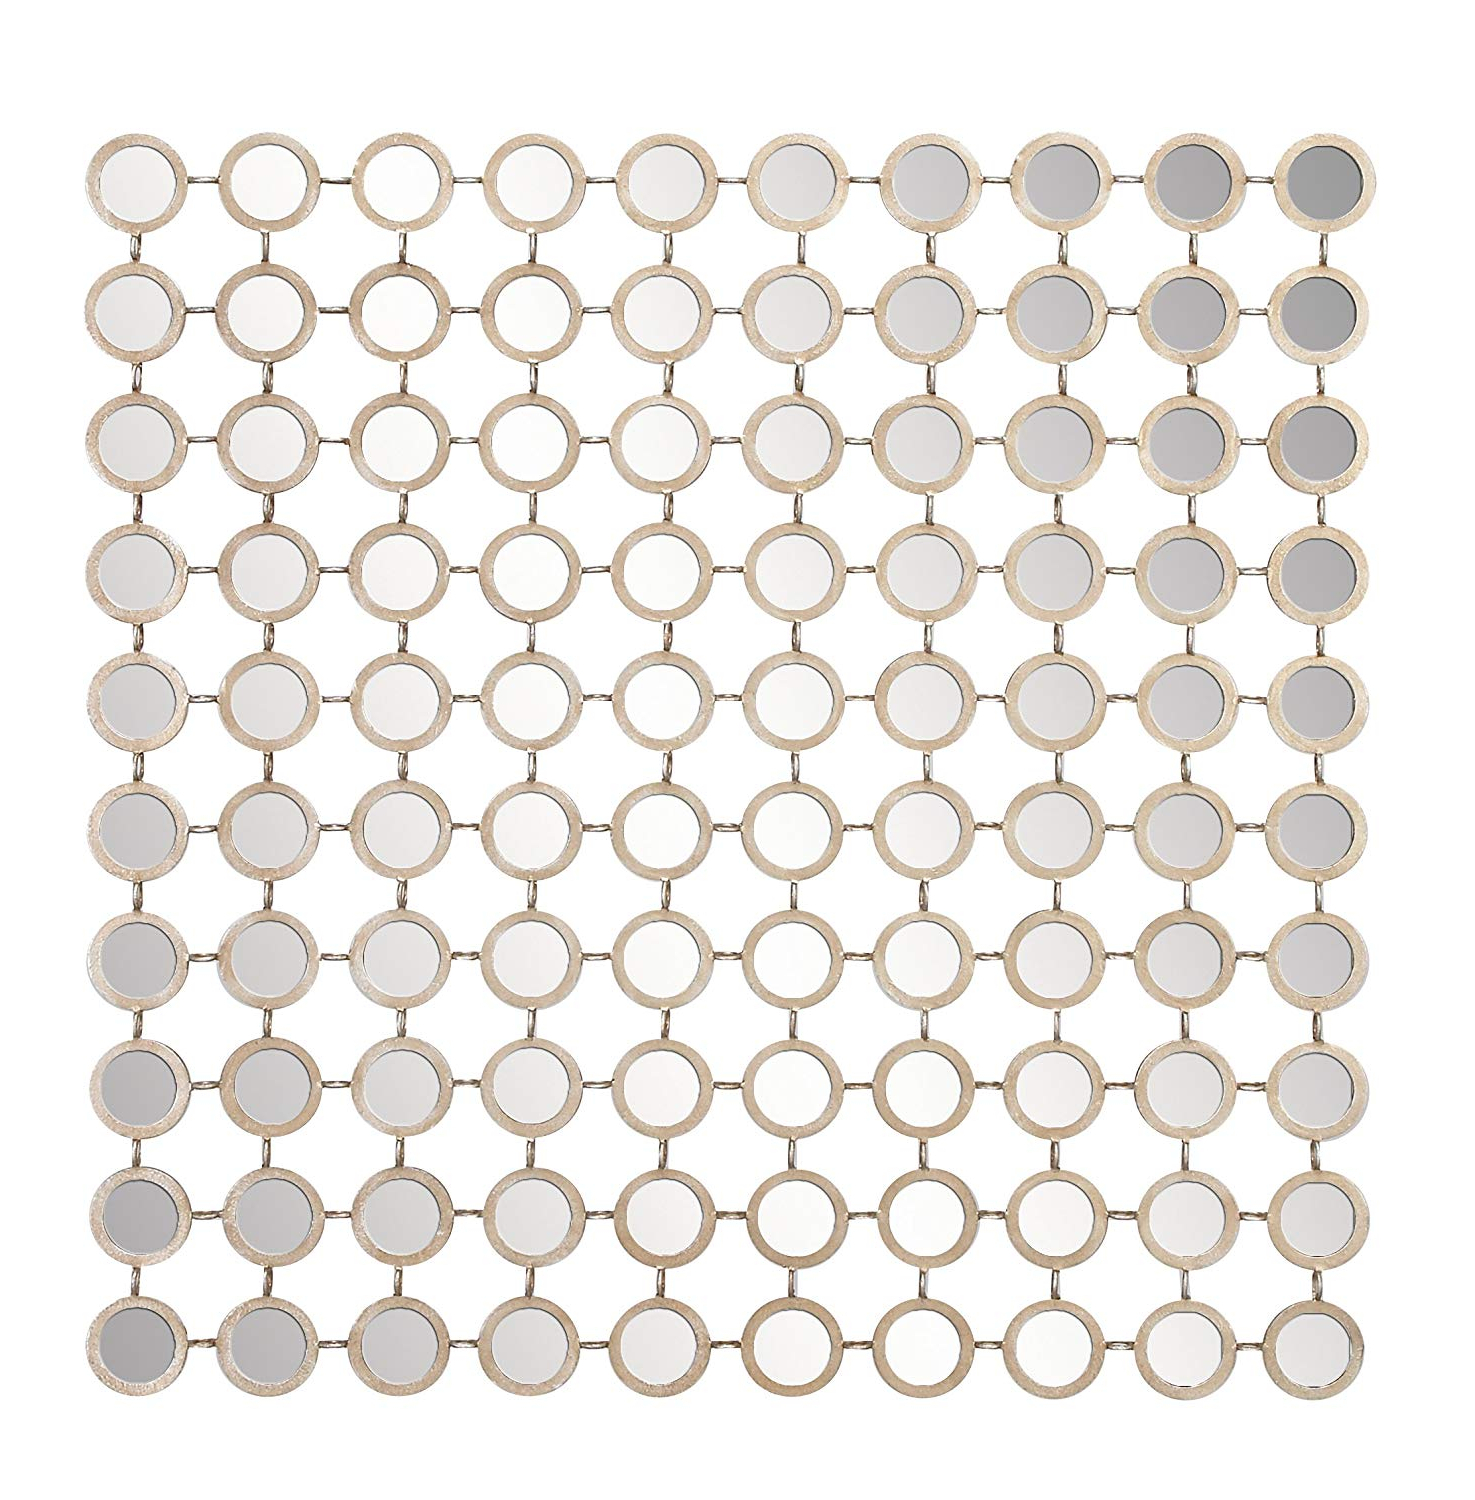 Deco 79 64109 Modern Style Large Square Wall Mirror With Round Gold Metal  Mirror Grid, Gold Mirror Wall Decor, Contemporary Wall Mirror, Accent Decor For Most Up To Date Contemporary Wall Mirrors (View 18 of 20)